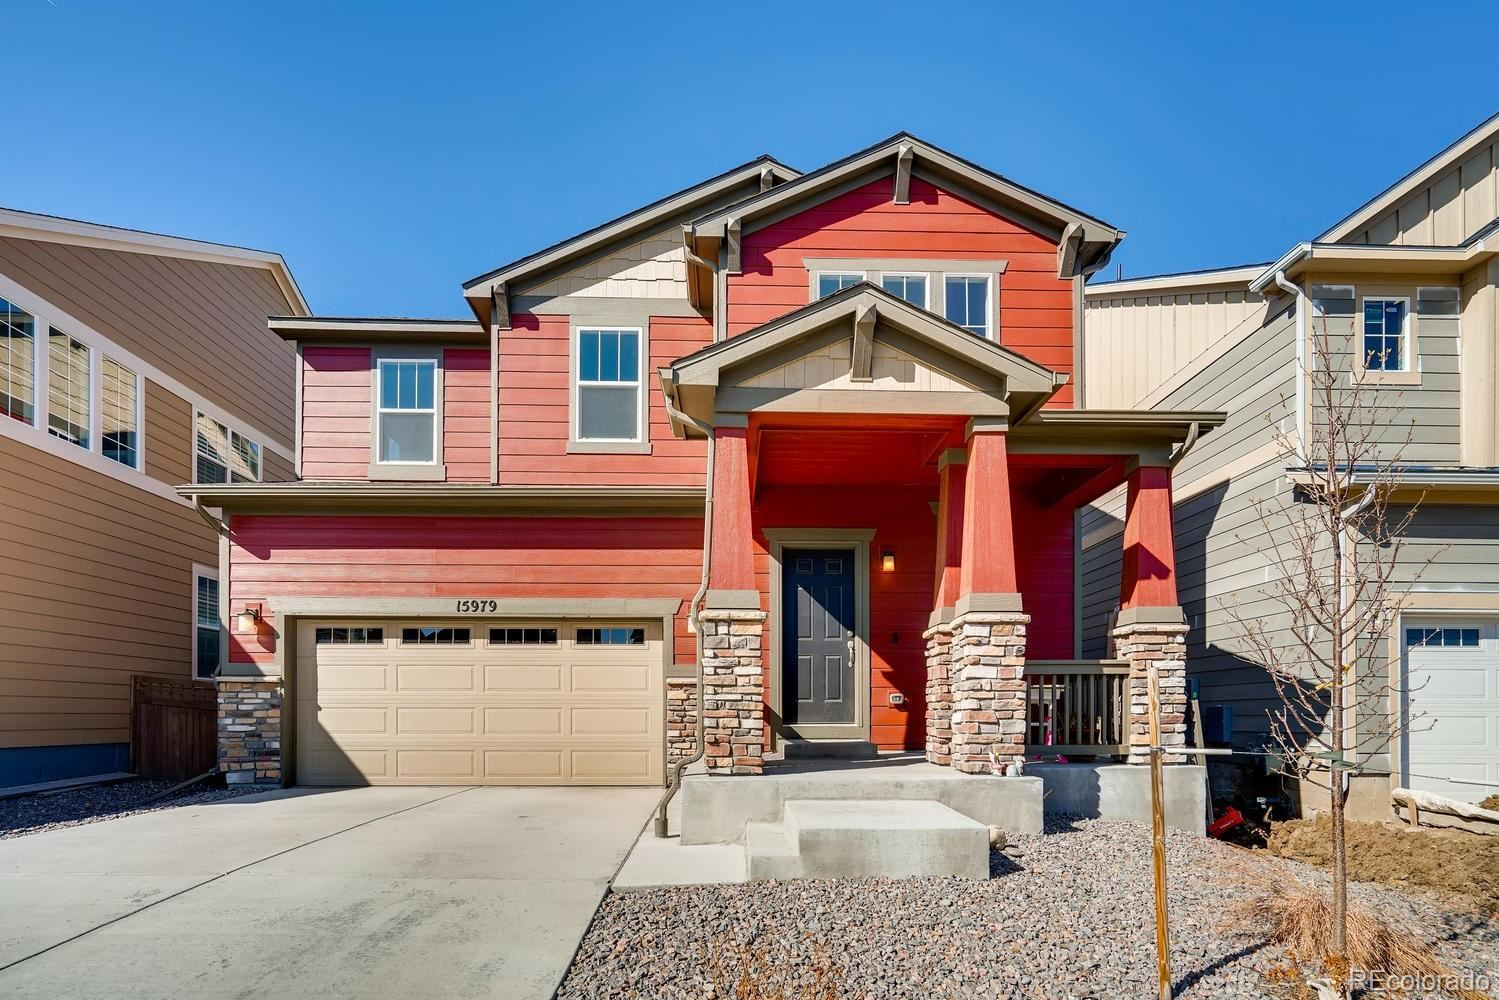 15979 E Otero Circle, Centennial, CO 80112 - #: 9123240